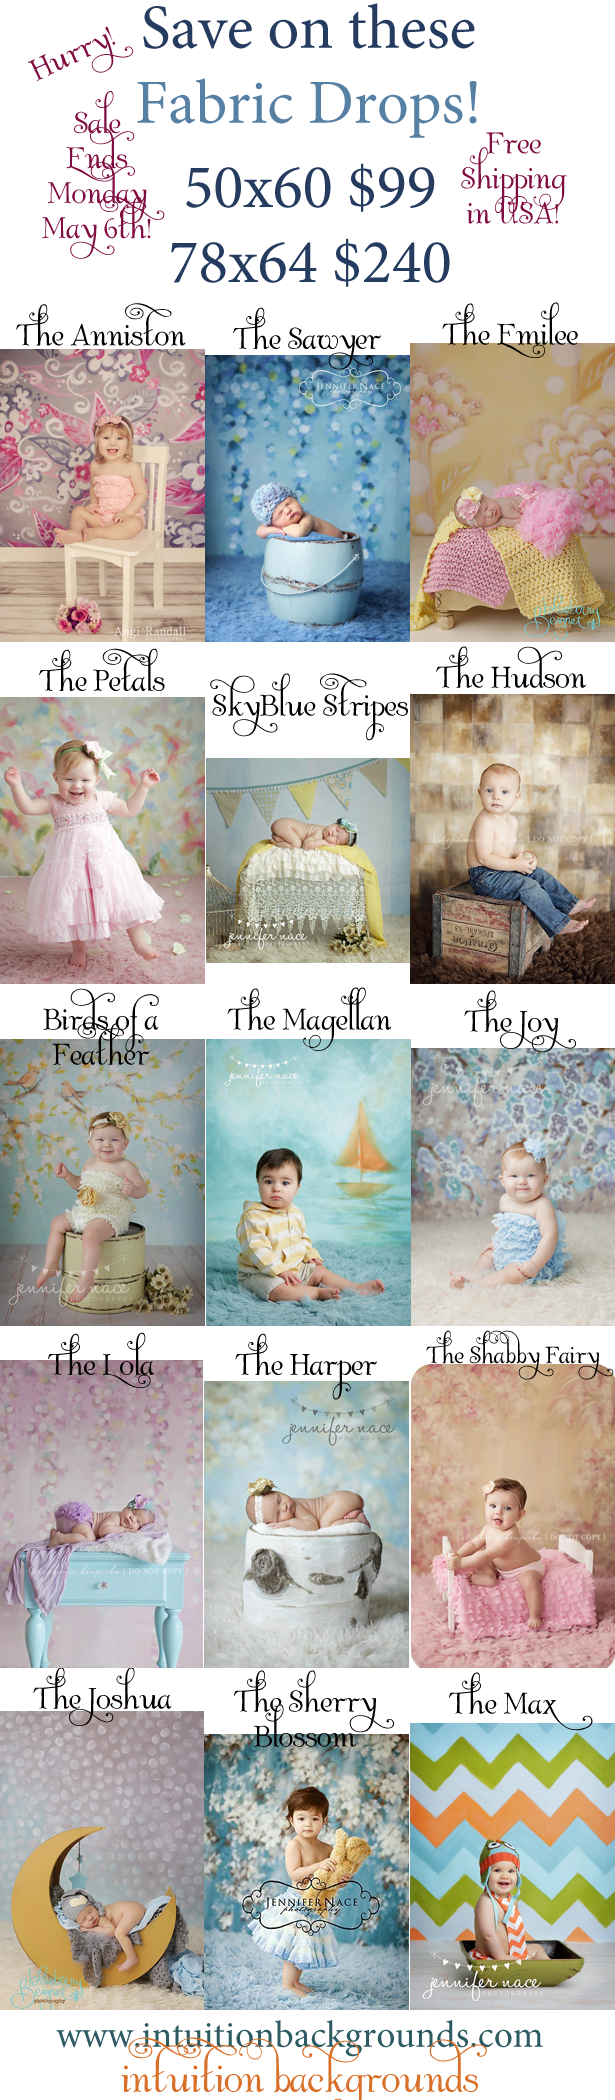 Intuition backgrounds coupon